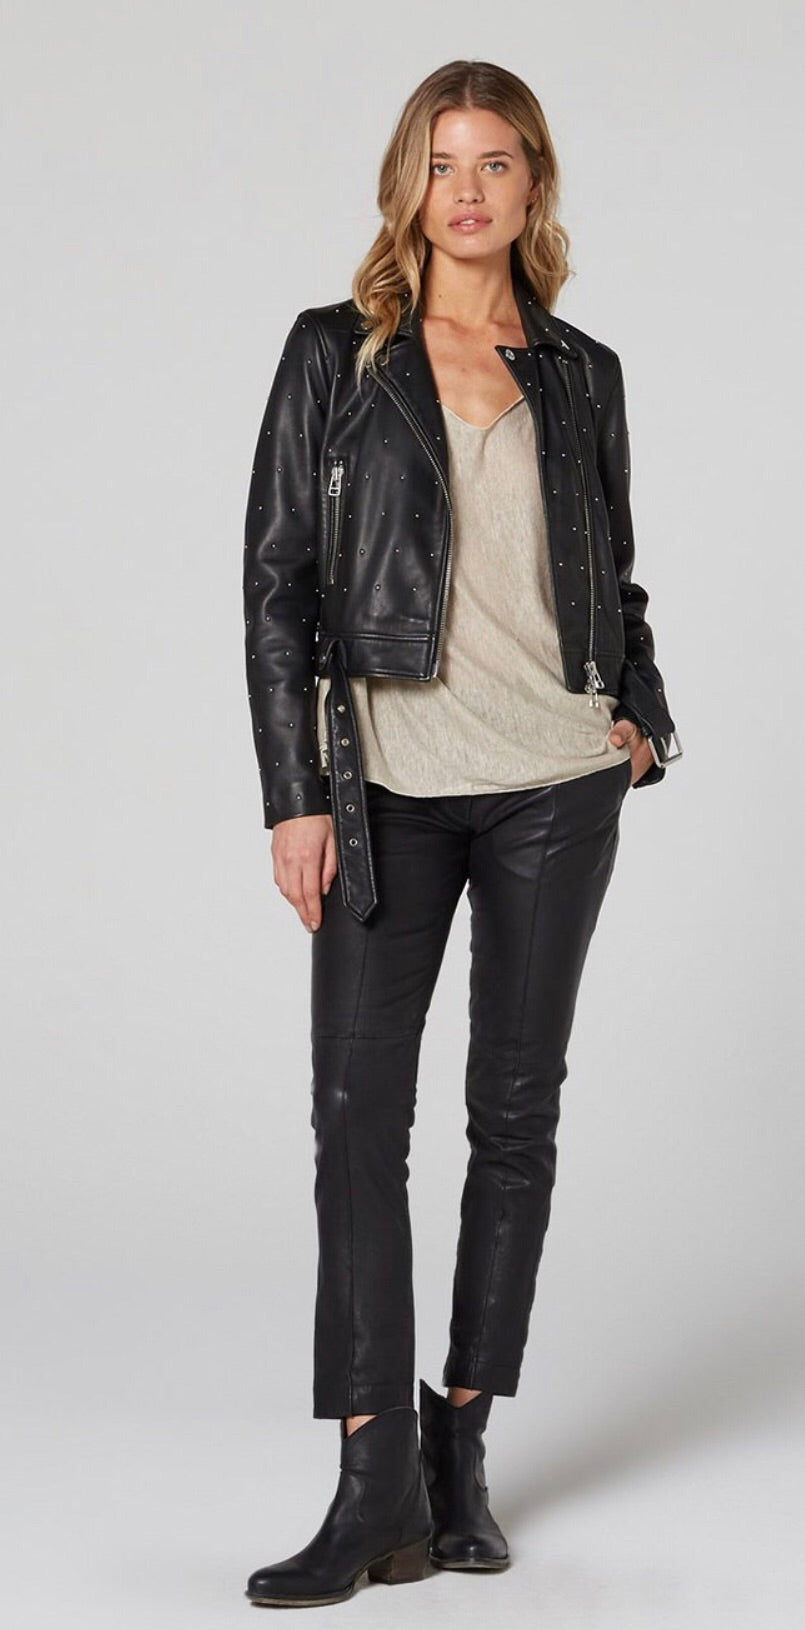 Estilo Emporio Tailor Leather Pants Black - LUXAMORE AUSTRALIA